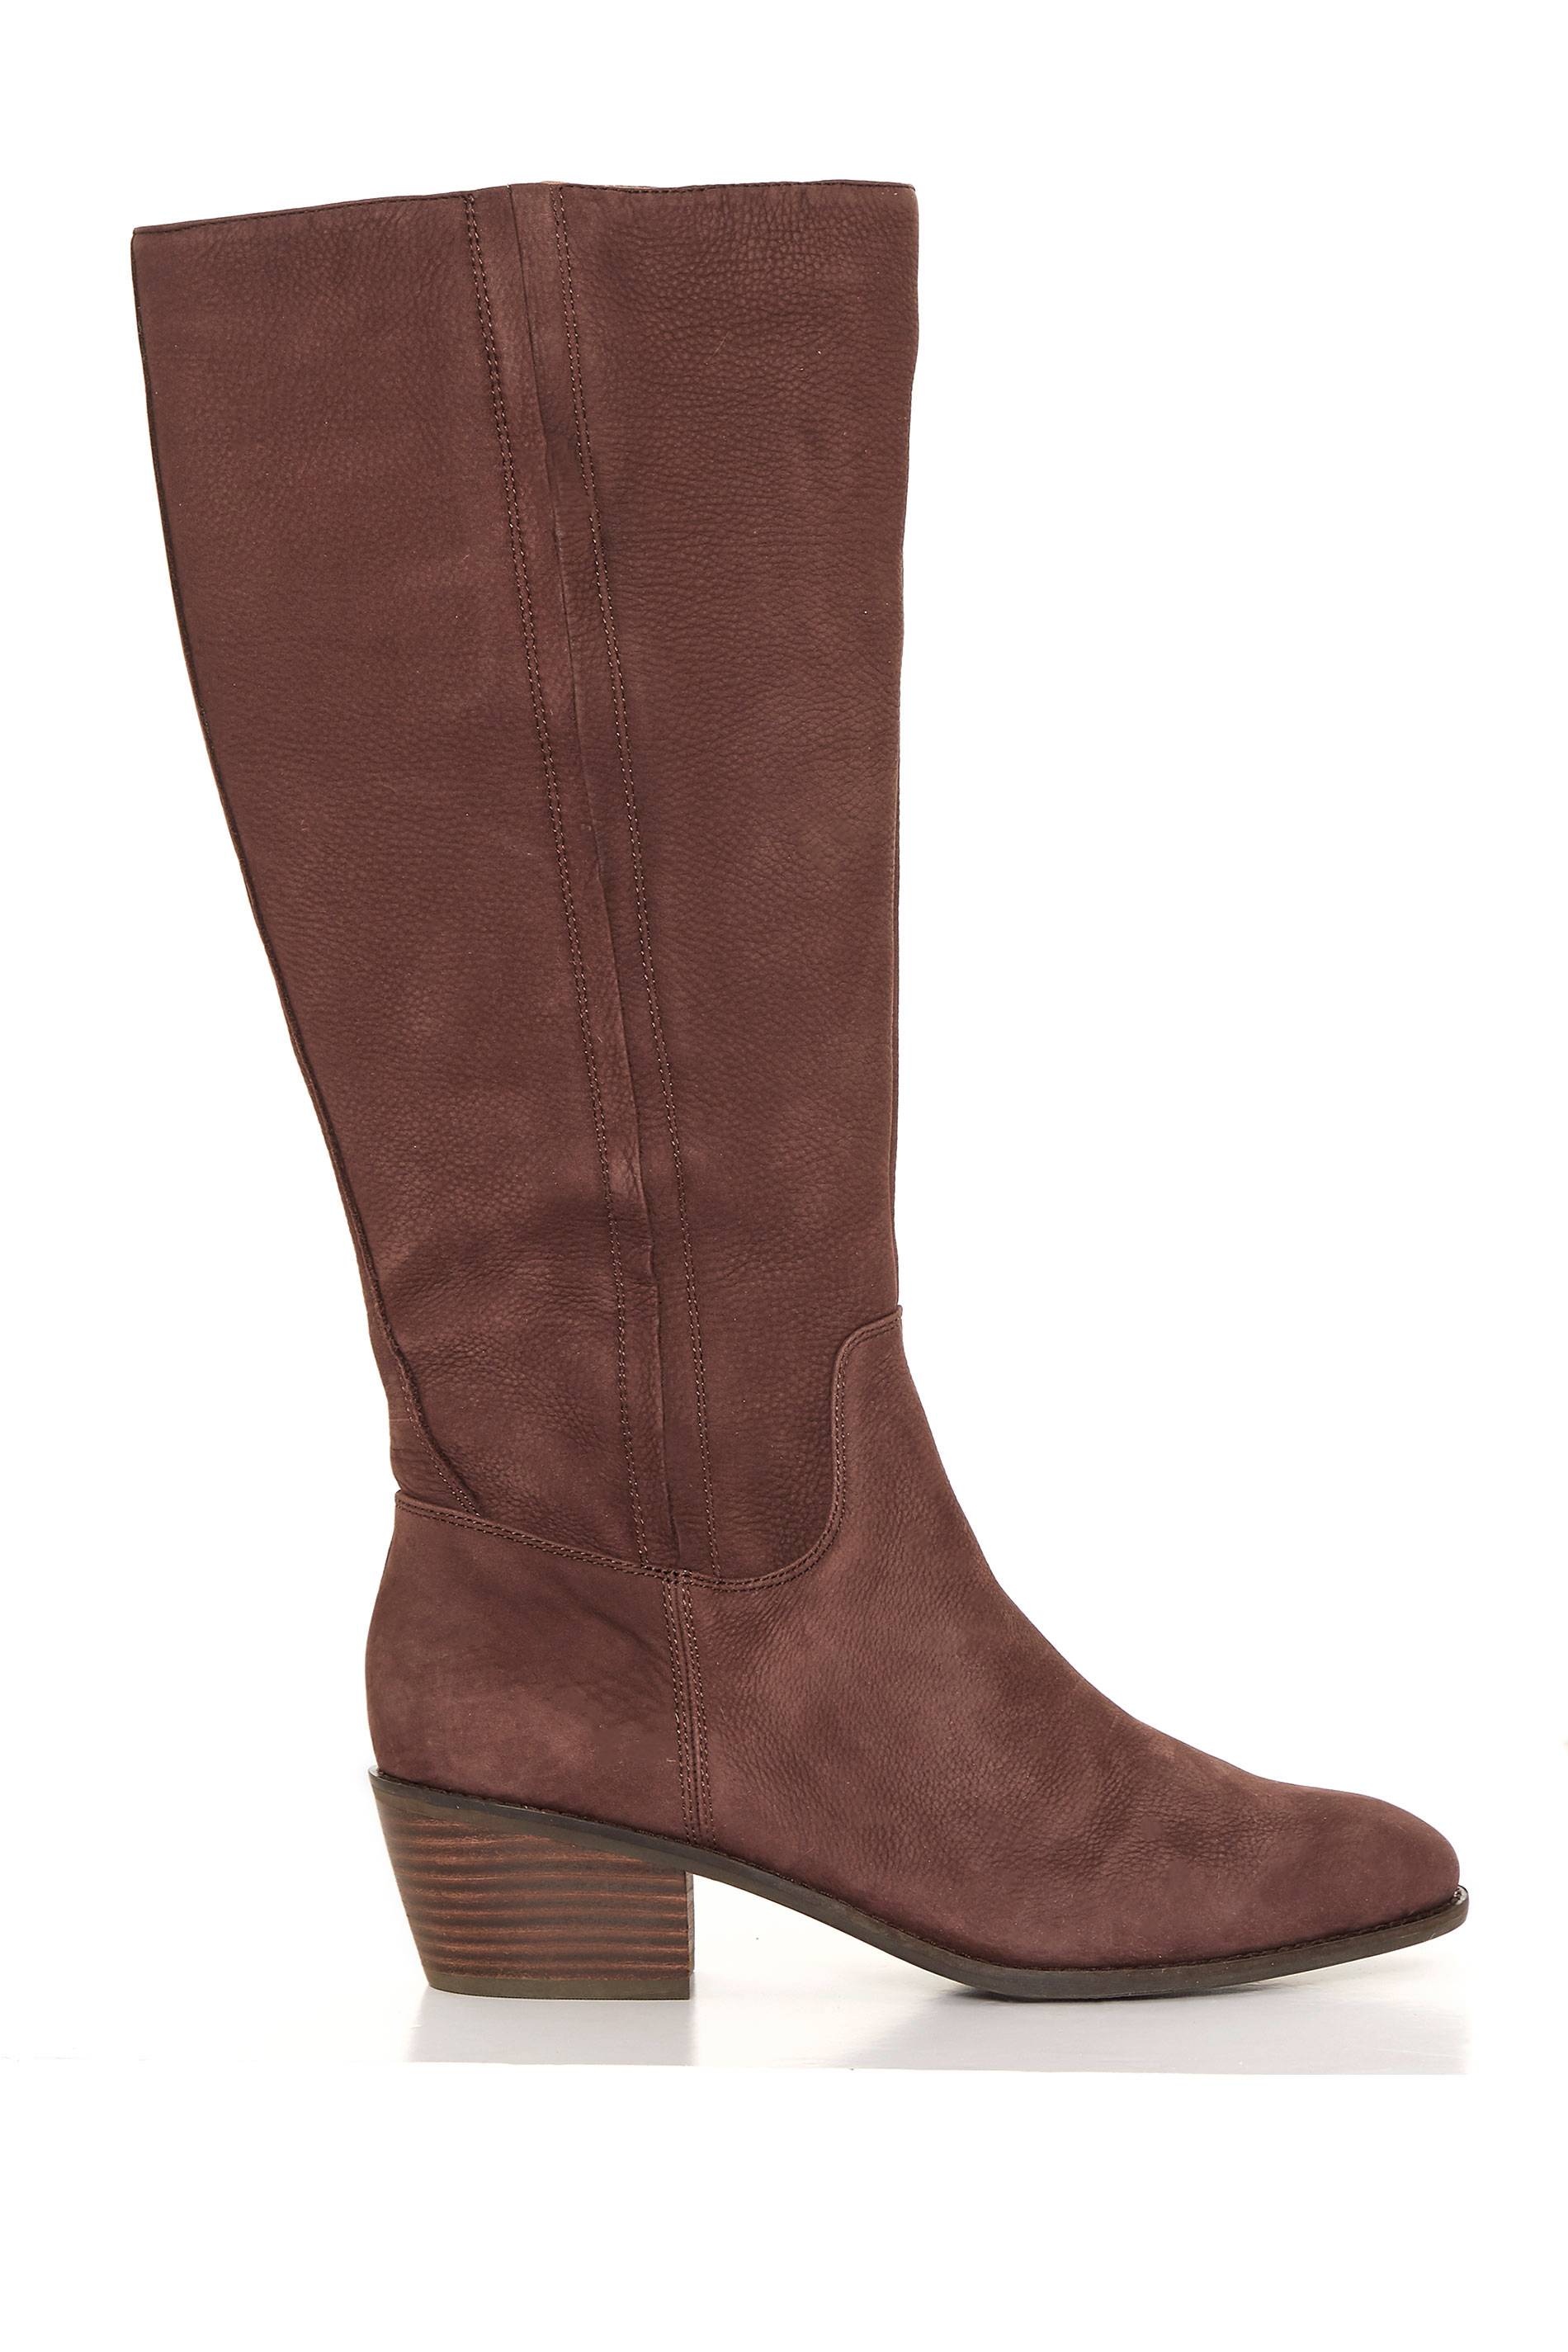 LUCKY BRAND Brown Leather Knee High Heeled Boots